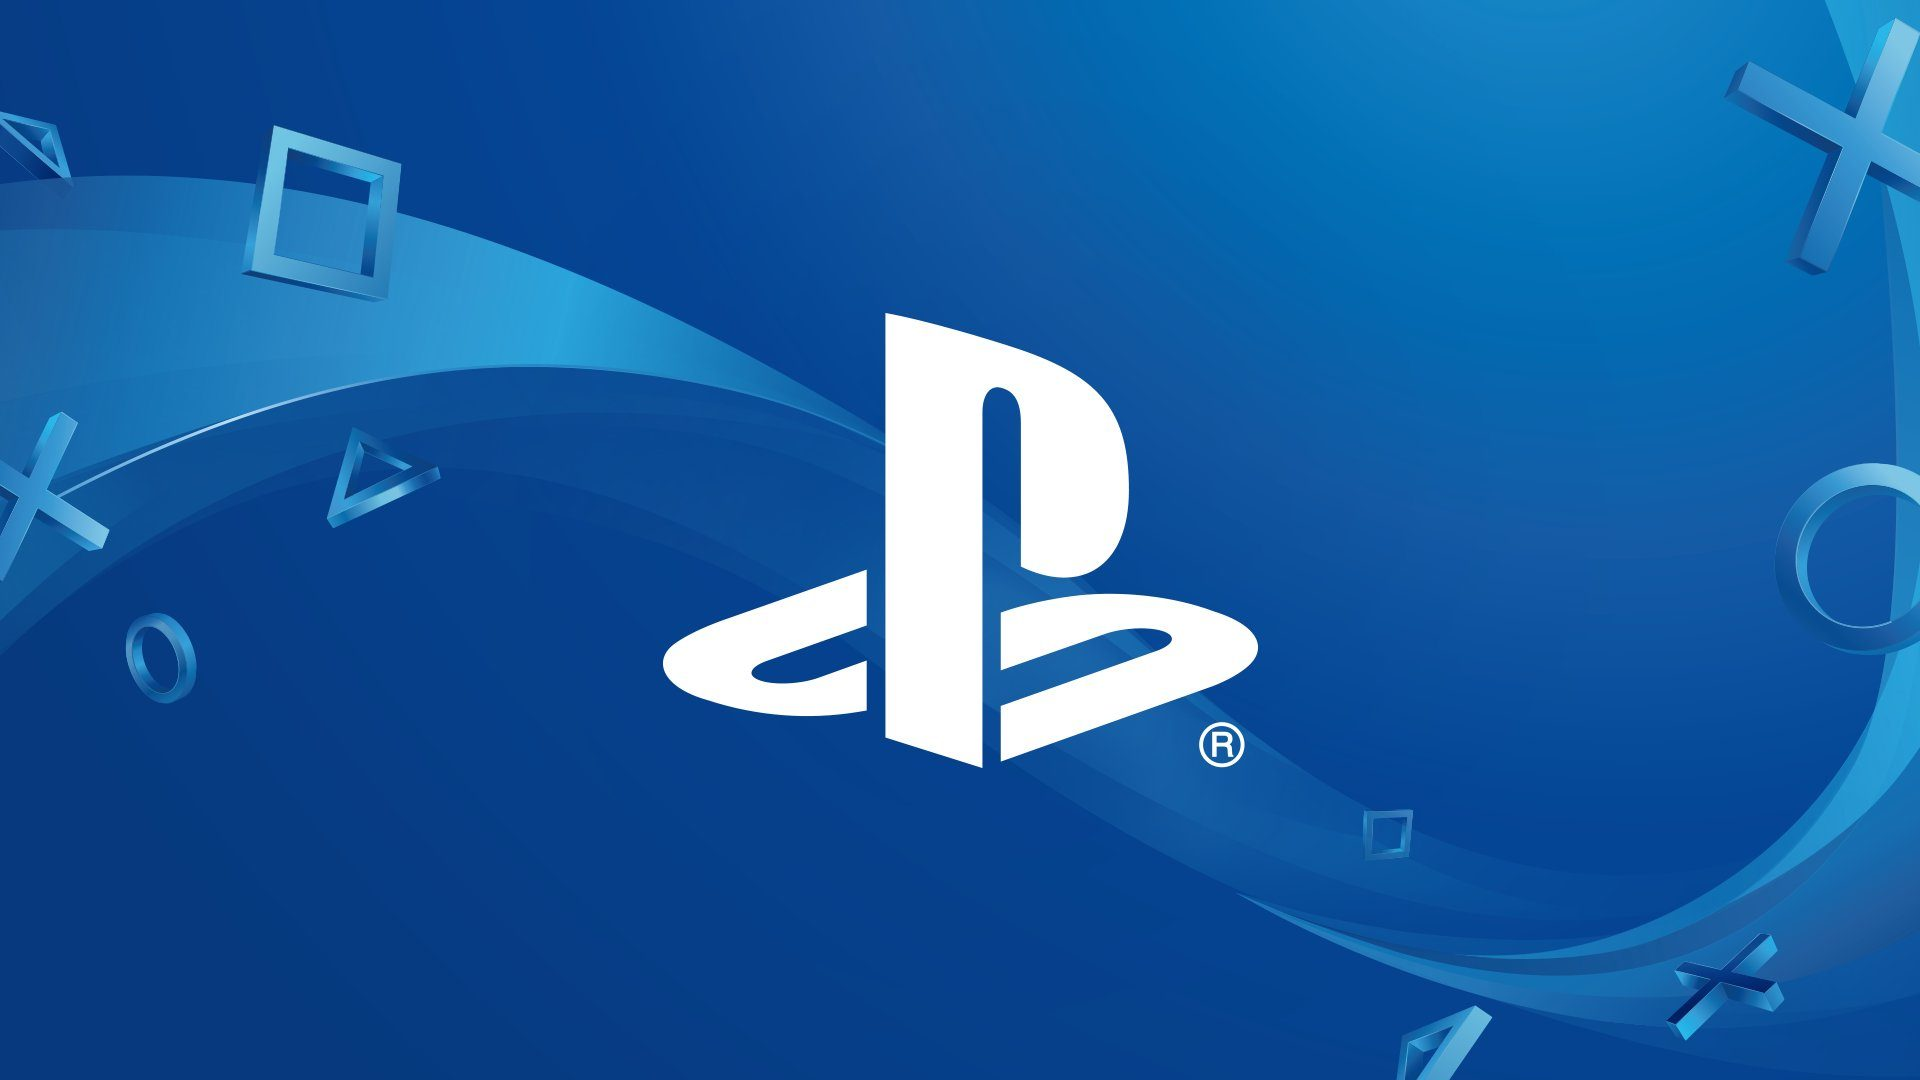 New Report Reveals Sony's New $70 Price Point For Its Games Could've Been Higher